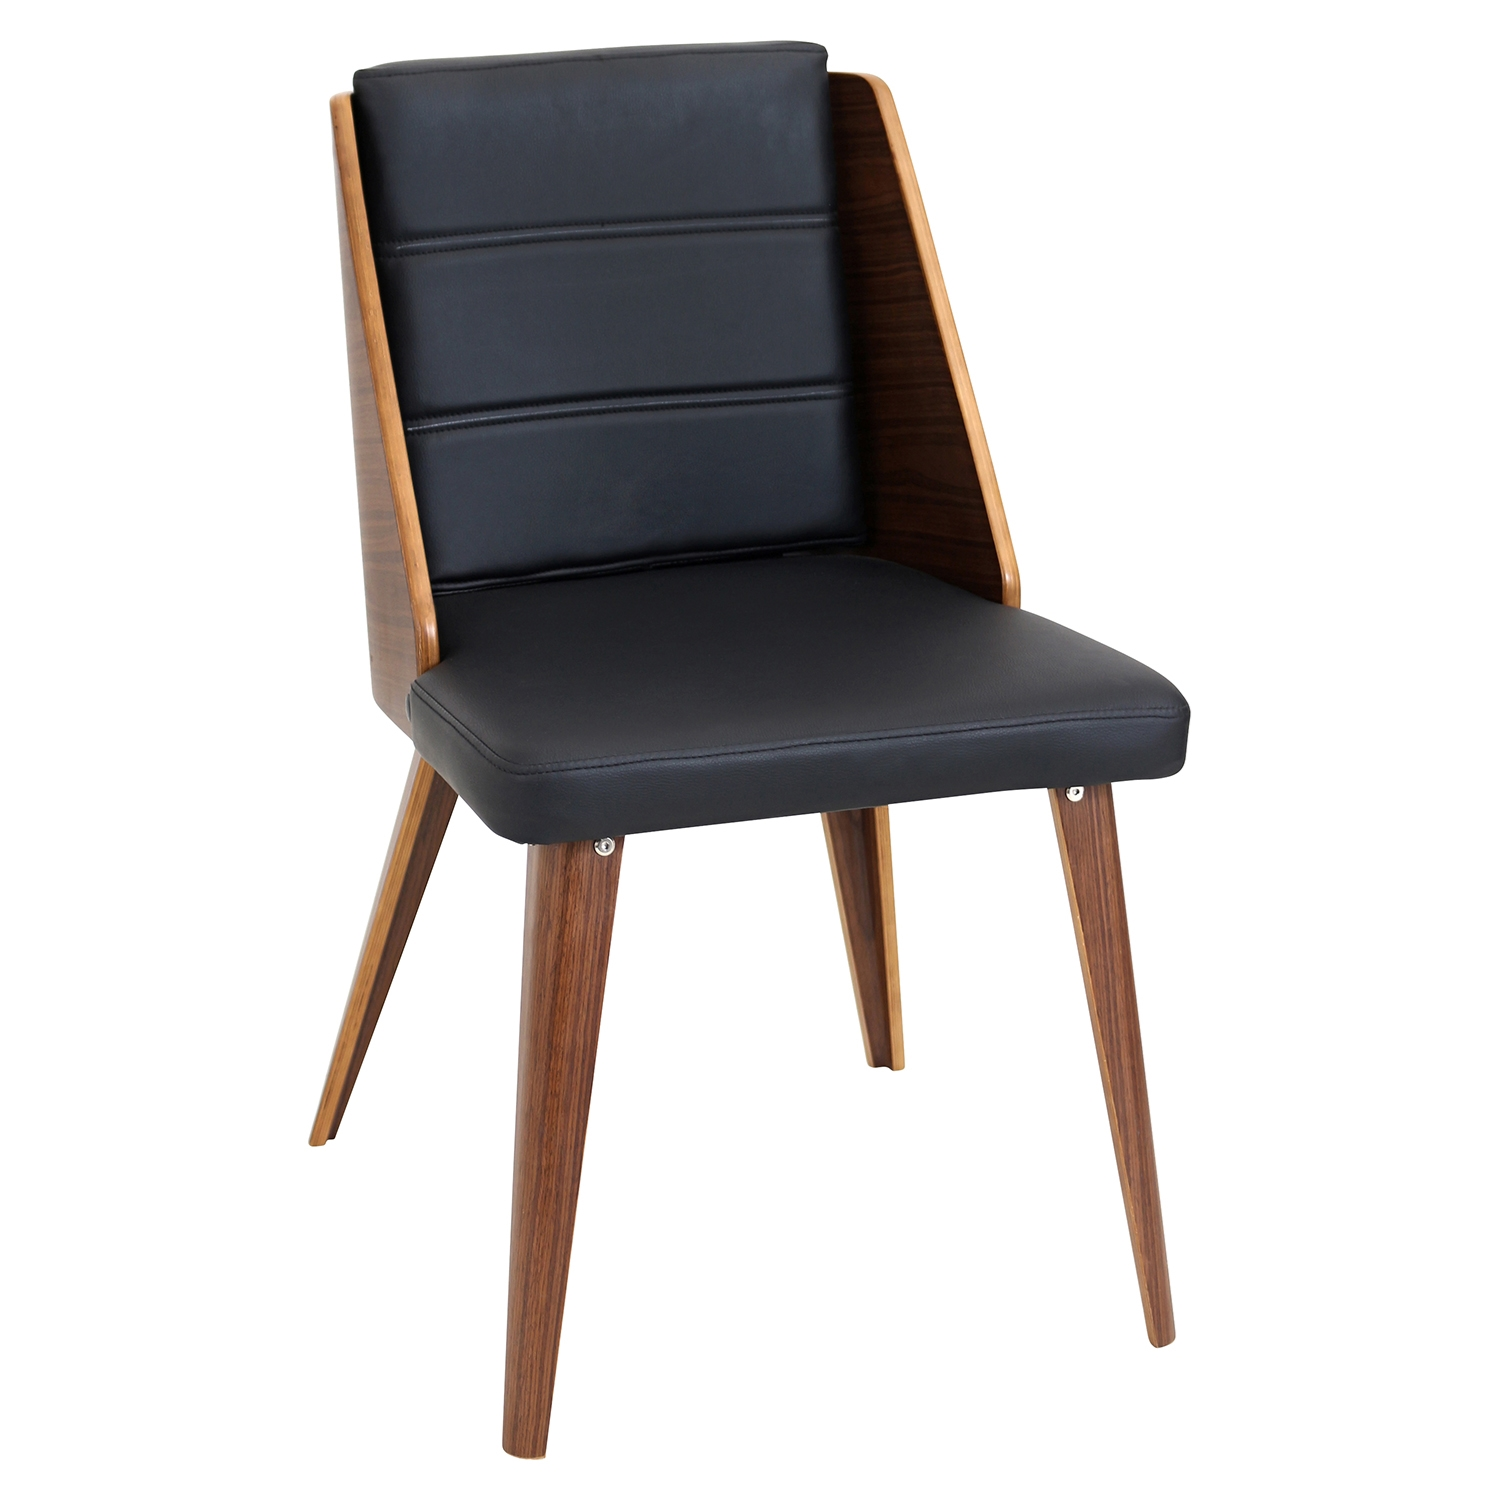 Galanti Dining Chair - Black (Set of 2) - LMS-CH-GAL-WL-BK2